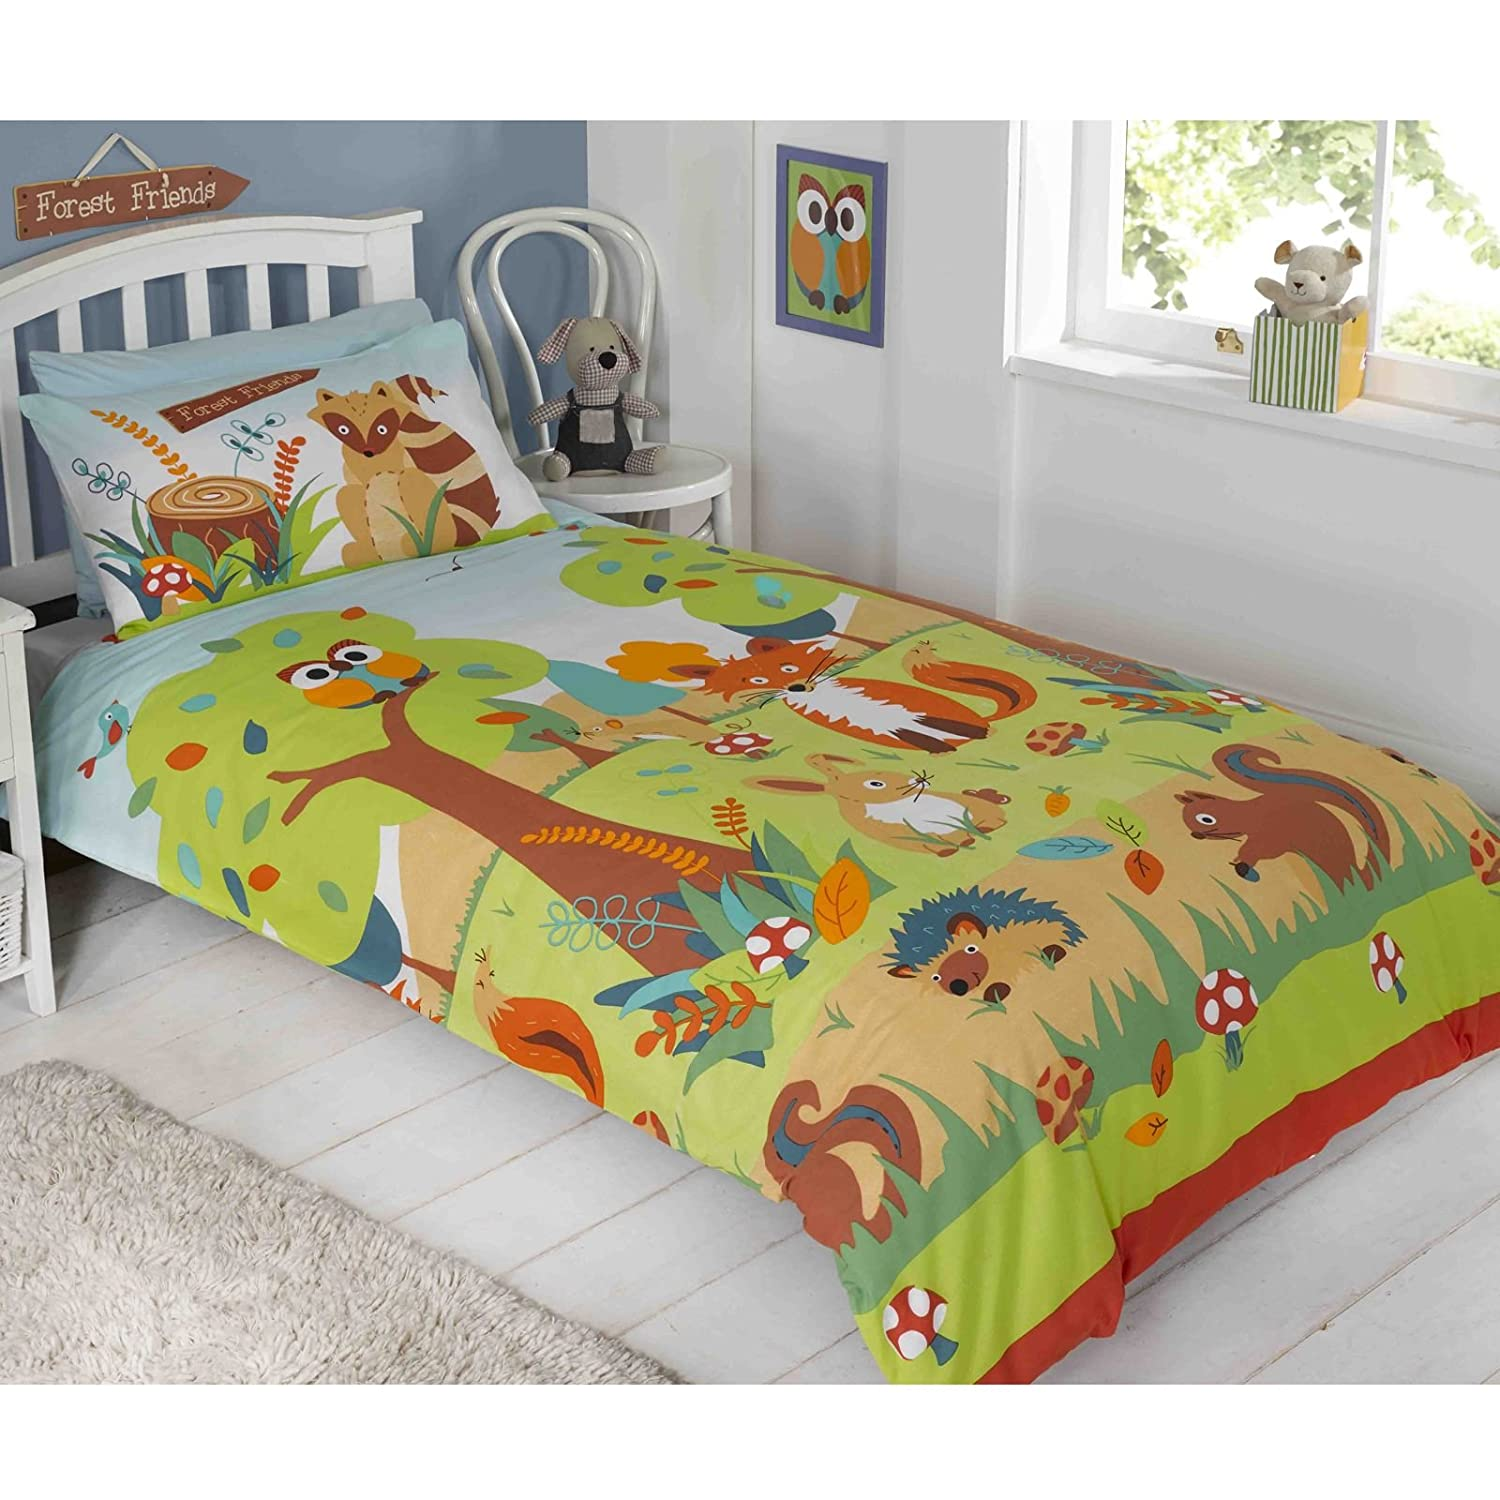 Forest Friends Childrens Duvet Set, Multi, Single